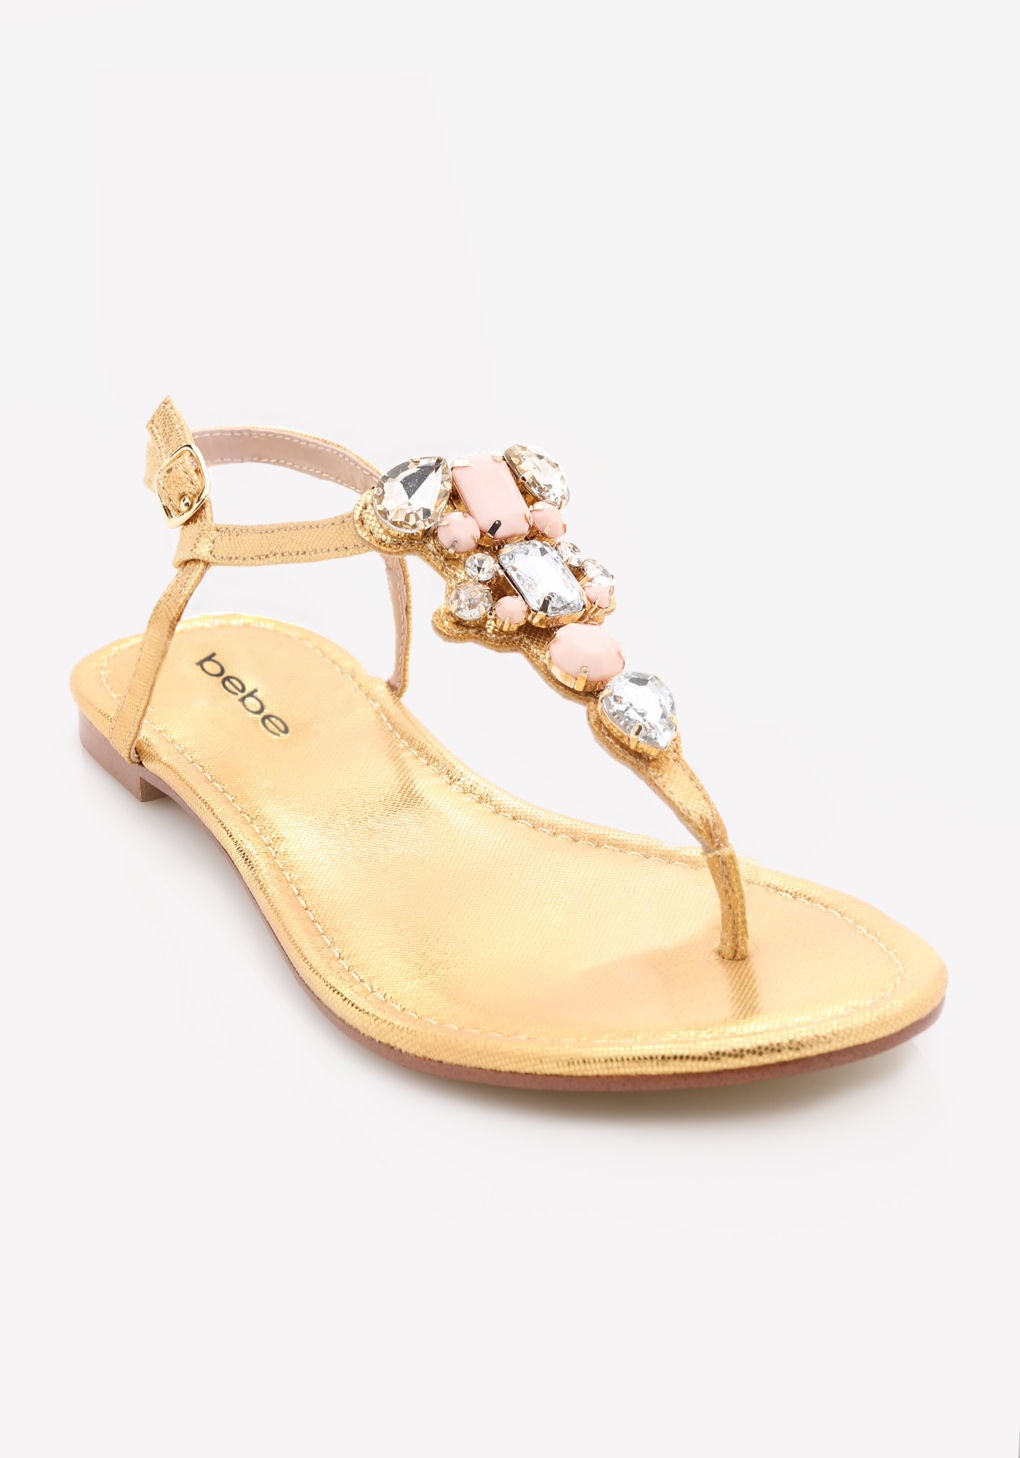 9fd3084658ceeb Lyst - Bebe Shaya Jeweled Flat Sandals in Natural